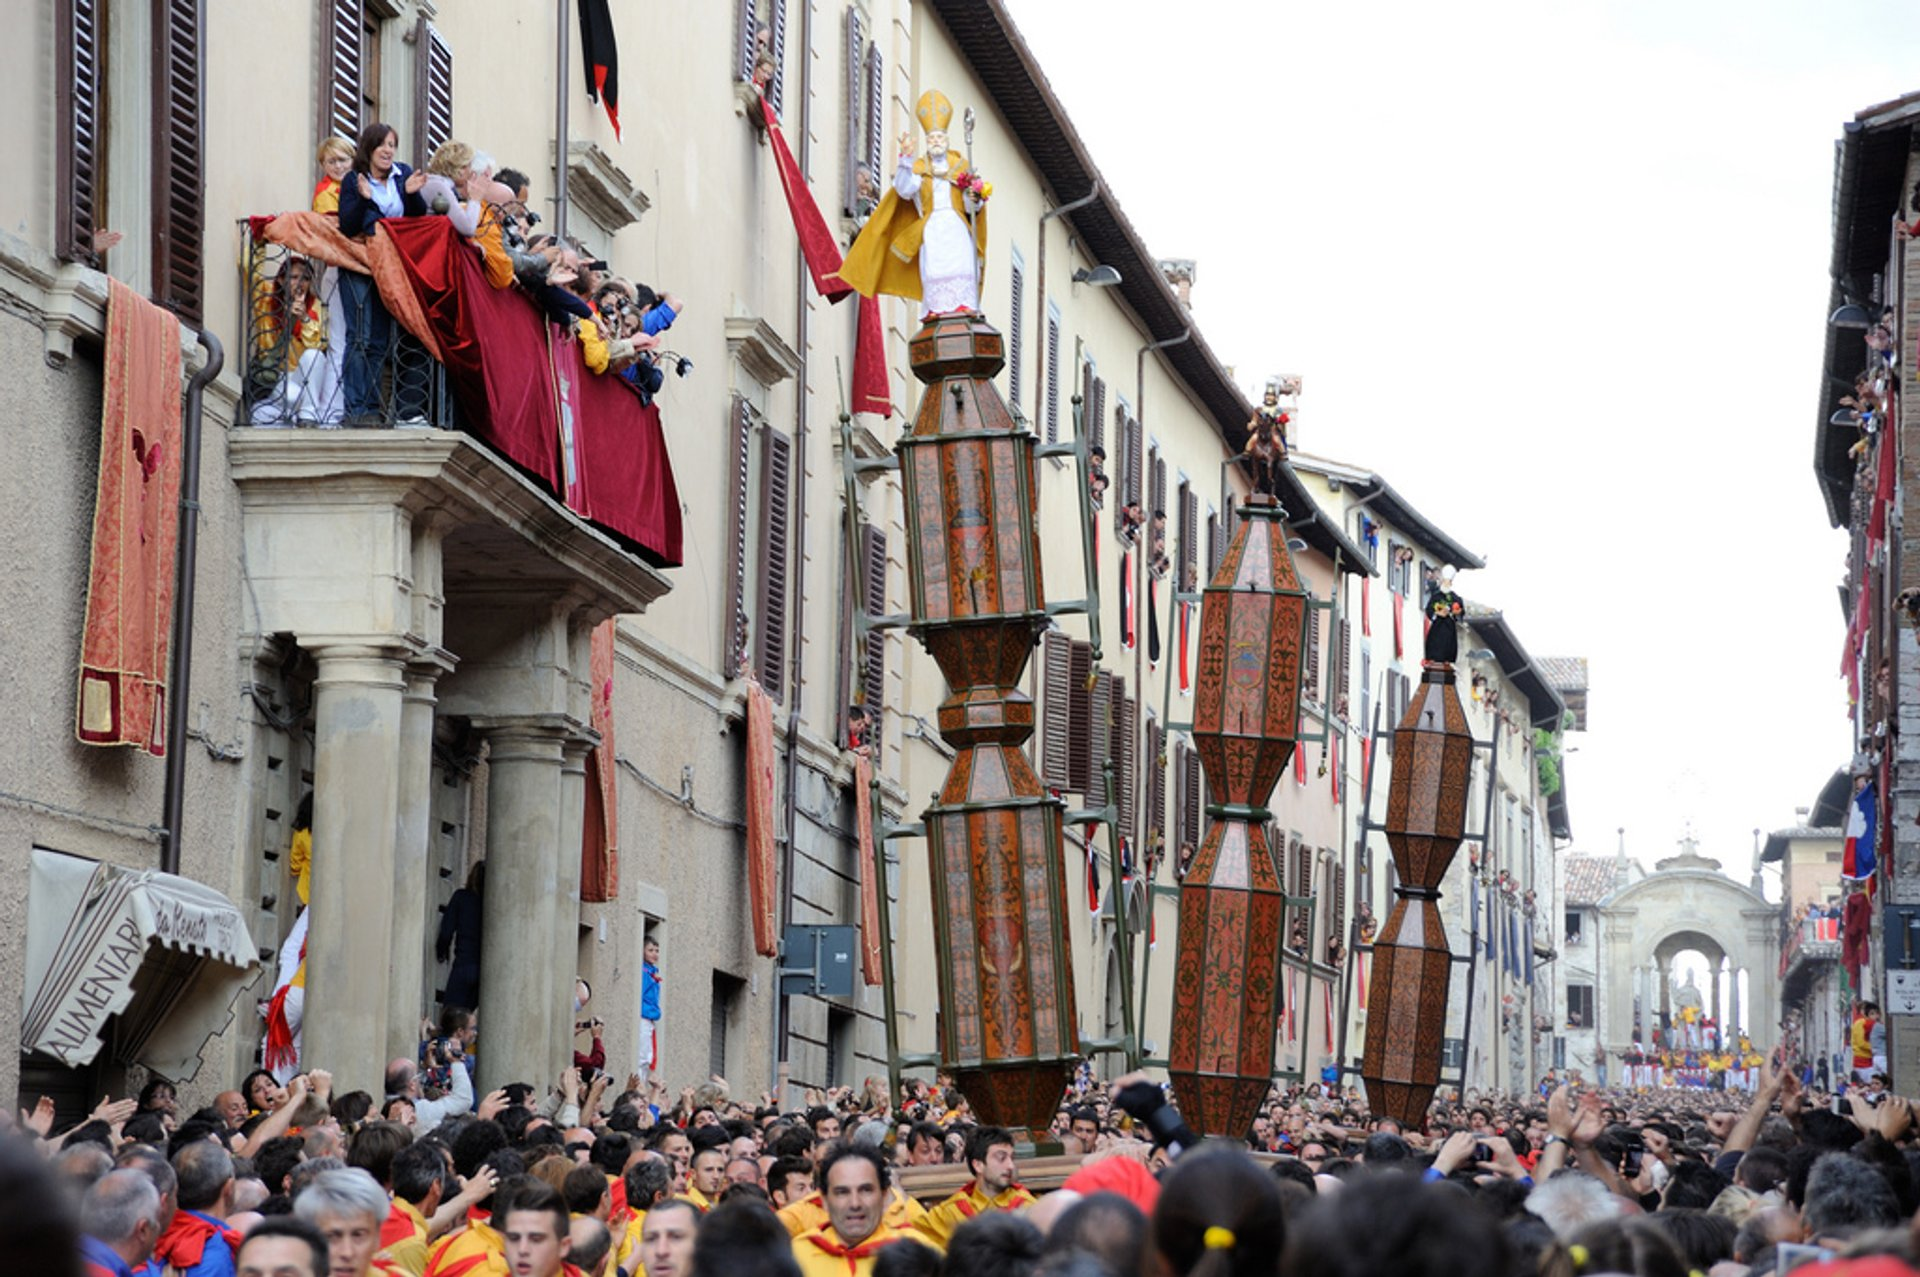 Best time for Gubbio Festa dei Ceri and Corsa dei Ceri (Race of the Candles) in Italy 2020